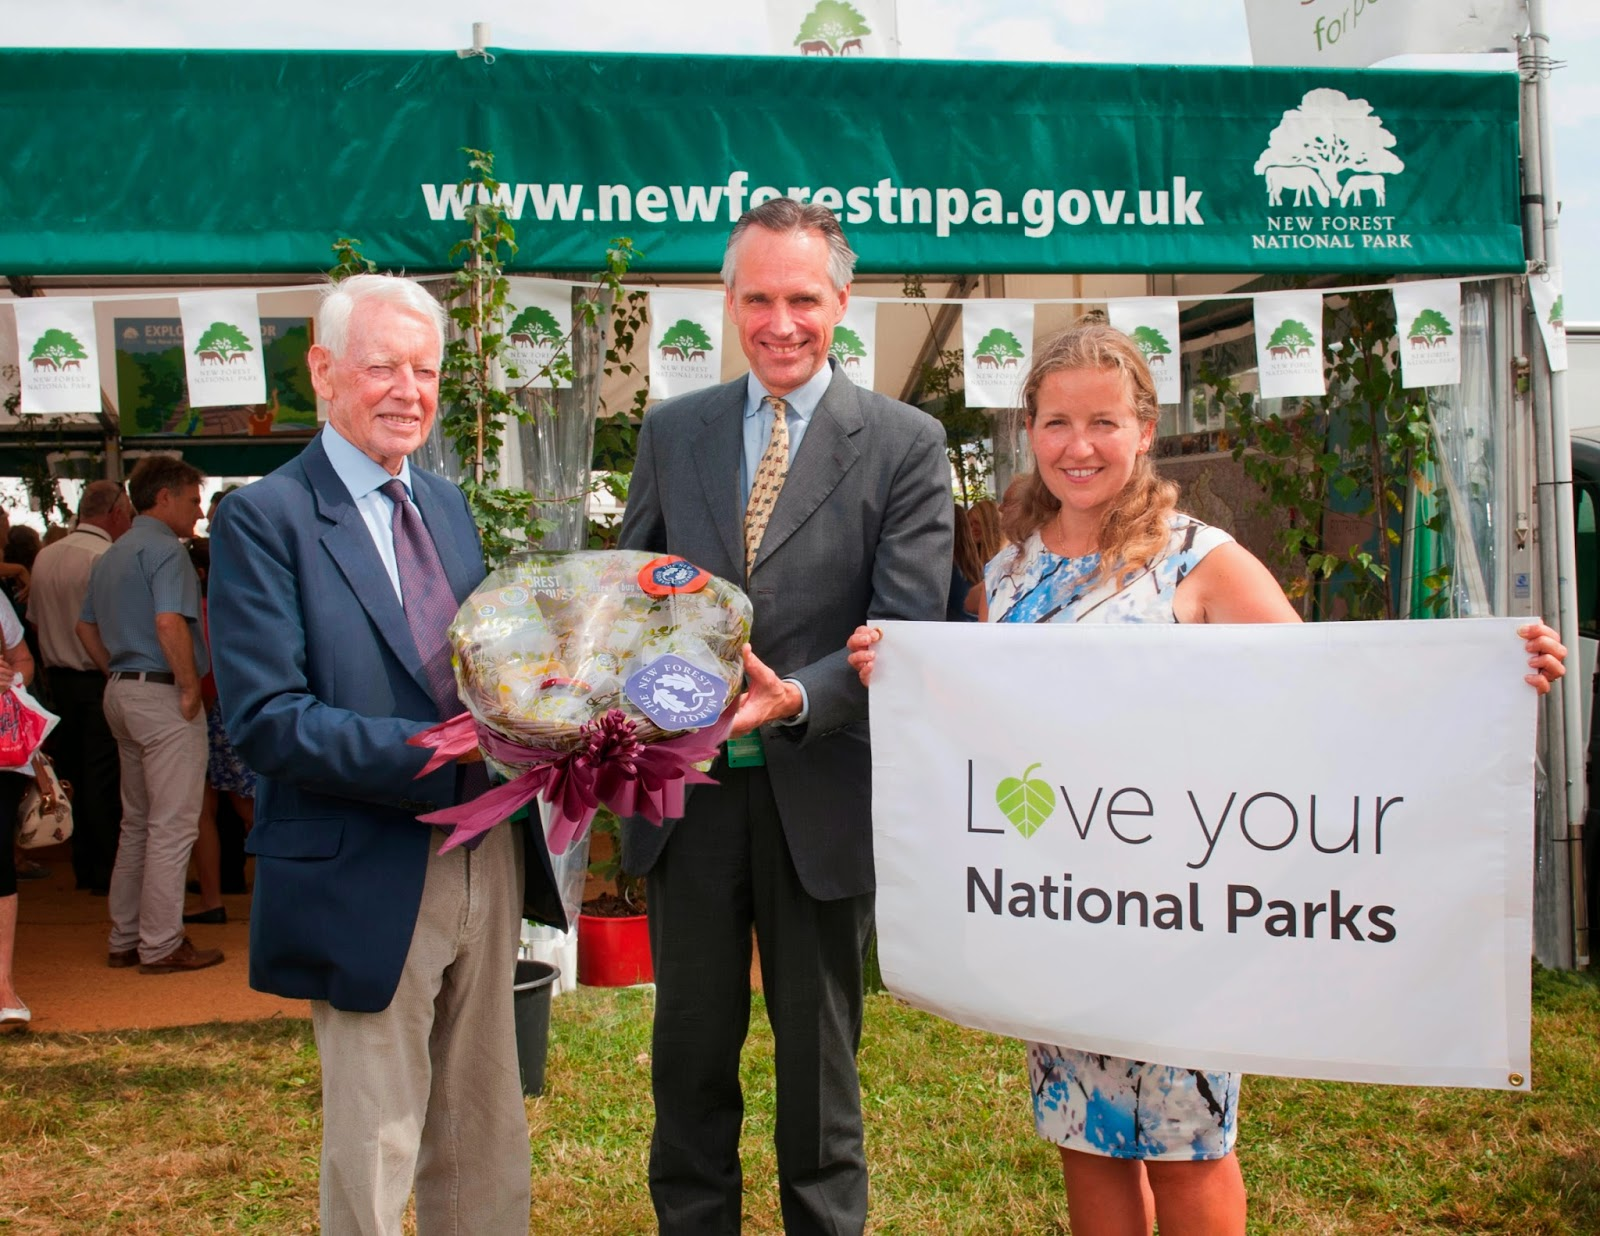 Lord de Mauley with NFNPA Julian Johnson and CExec Alison Barnes